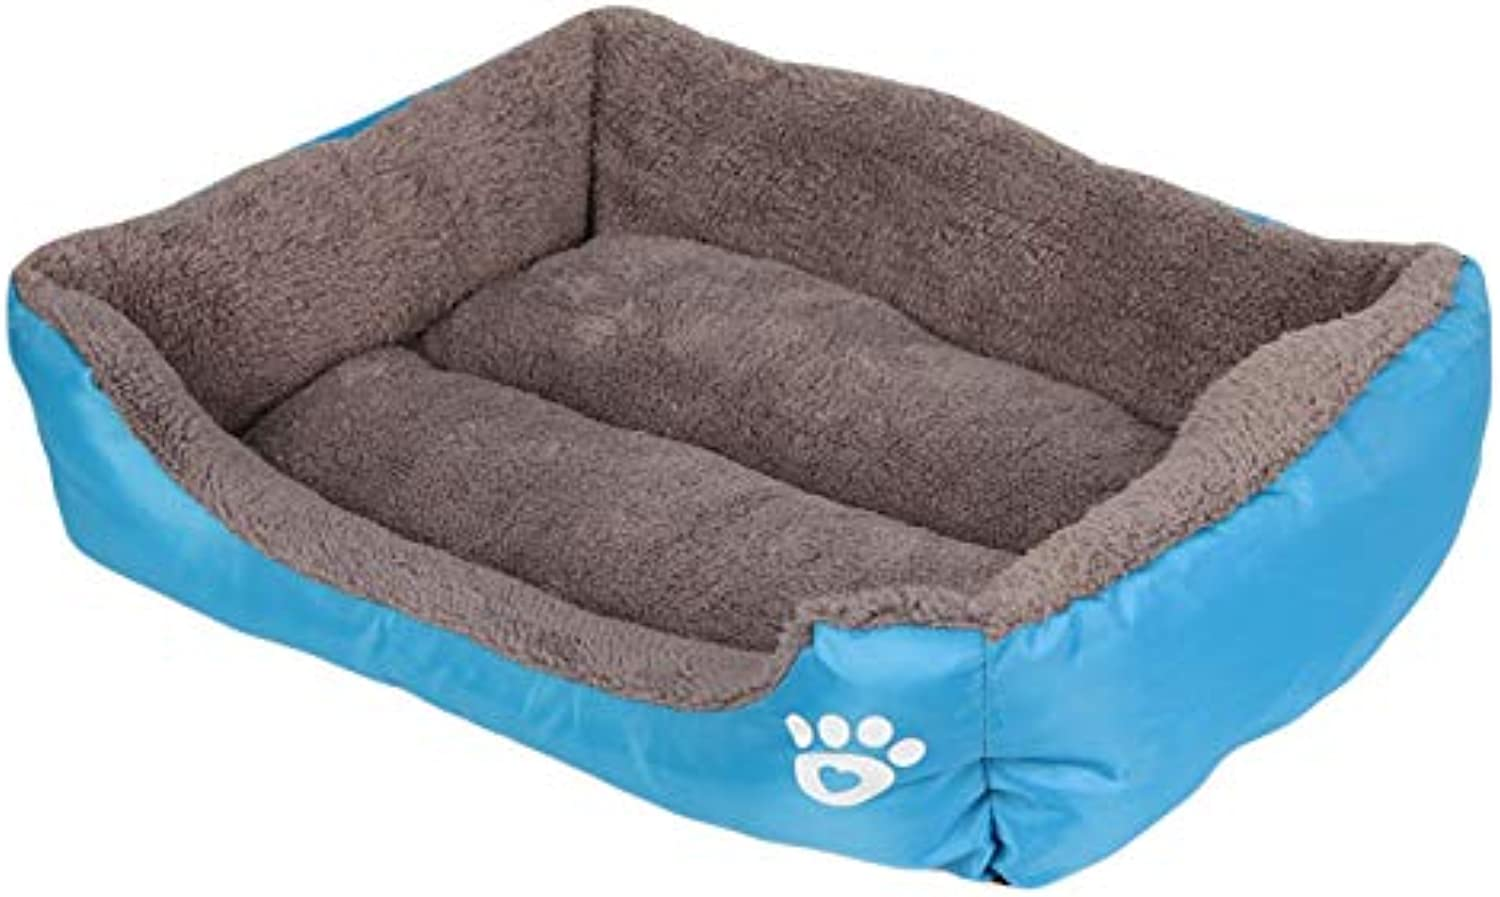 Cookisn 2XL Size Soft Cute Pet Warm Dog Bed Cozy House Fabric Cotton Pet Dog Beds for Cat Puppy Plus Big Large Dog Kennel Dropshipping bluee XL 80x60x15cm